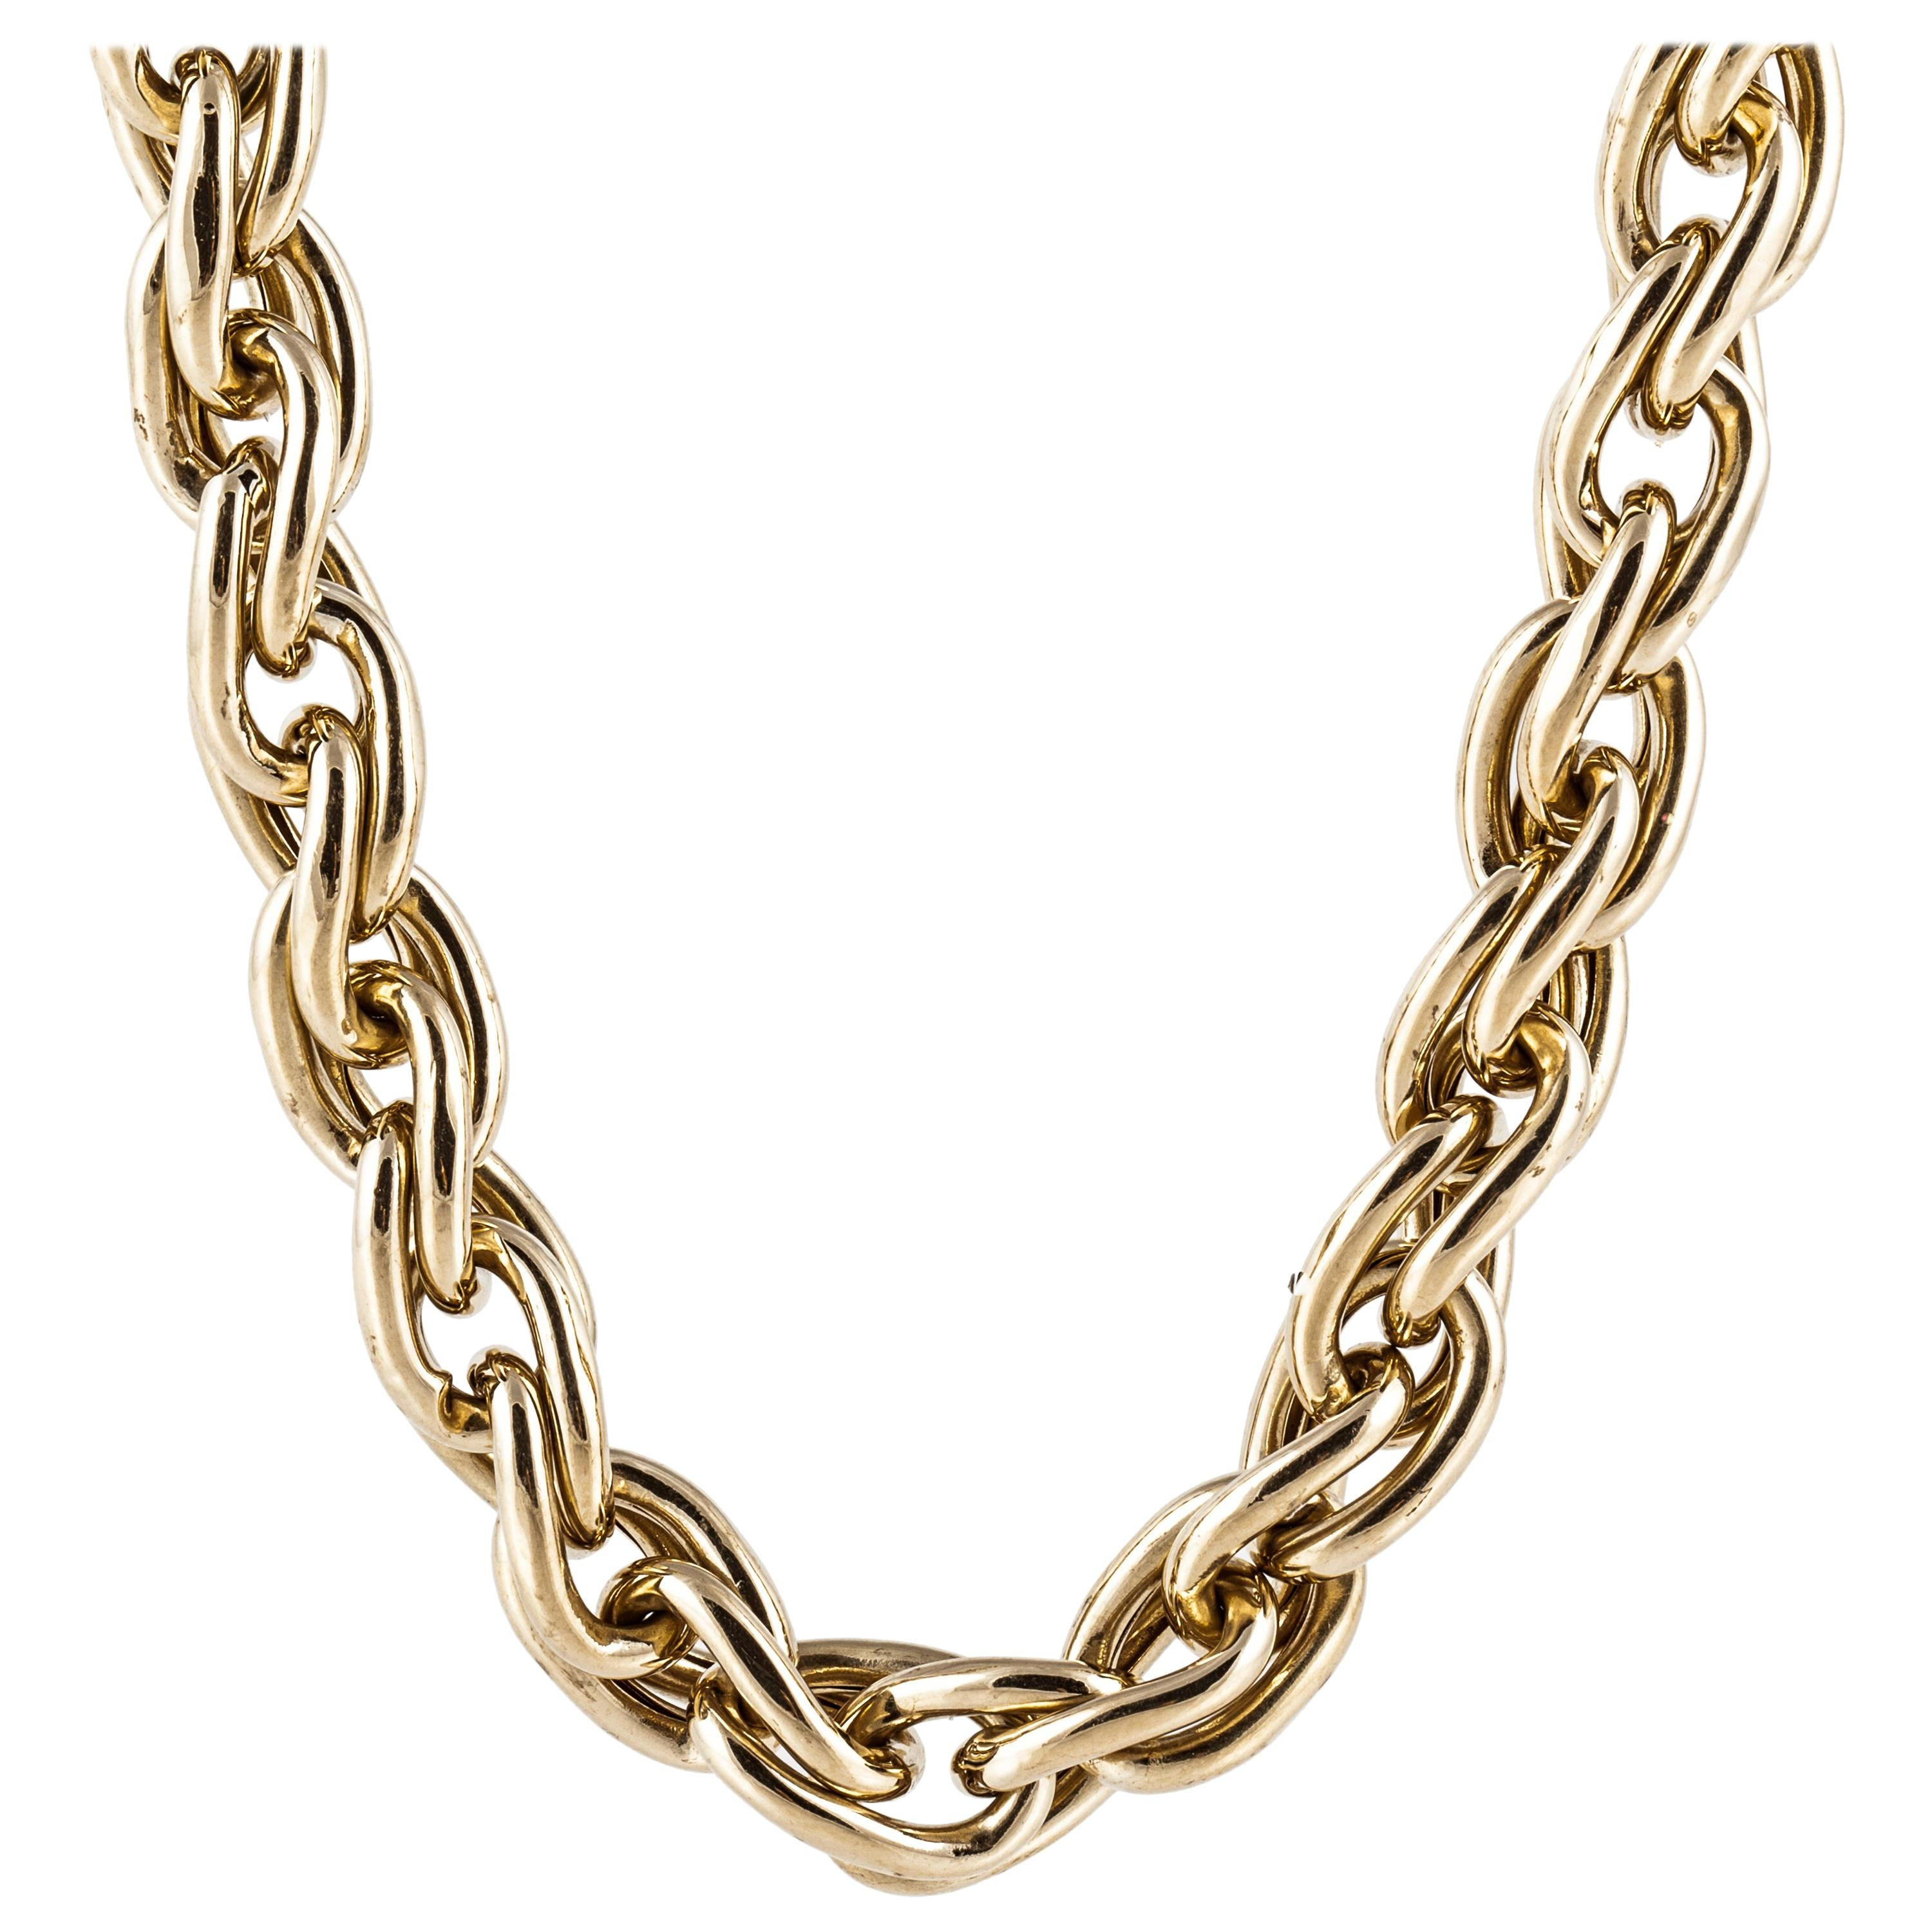 Link Chain Necklace in 18K Yellow Gold